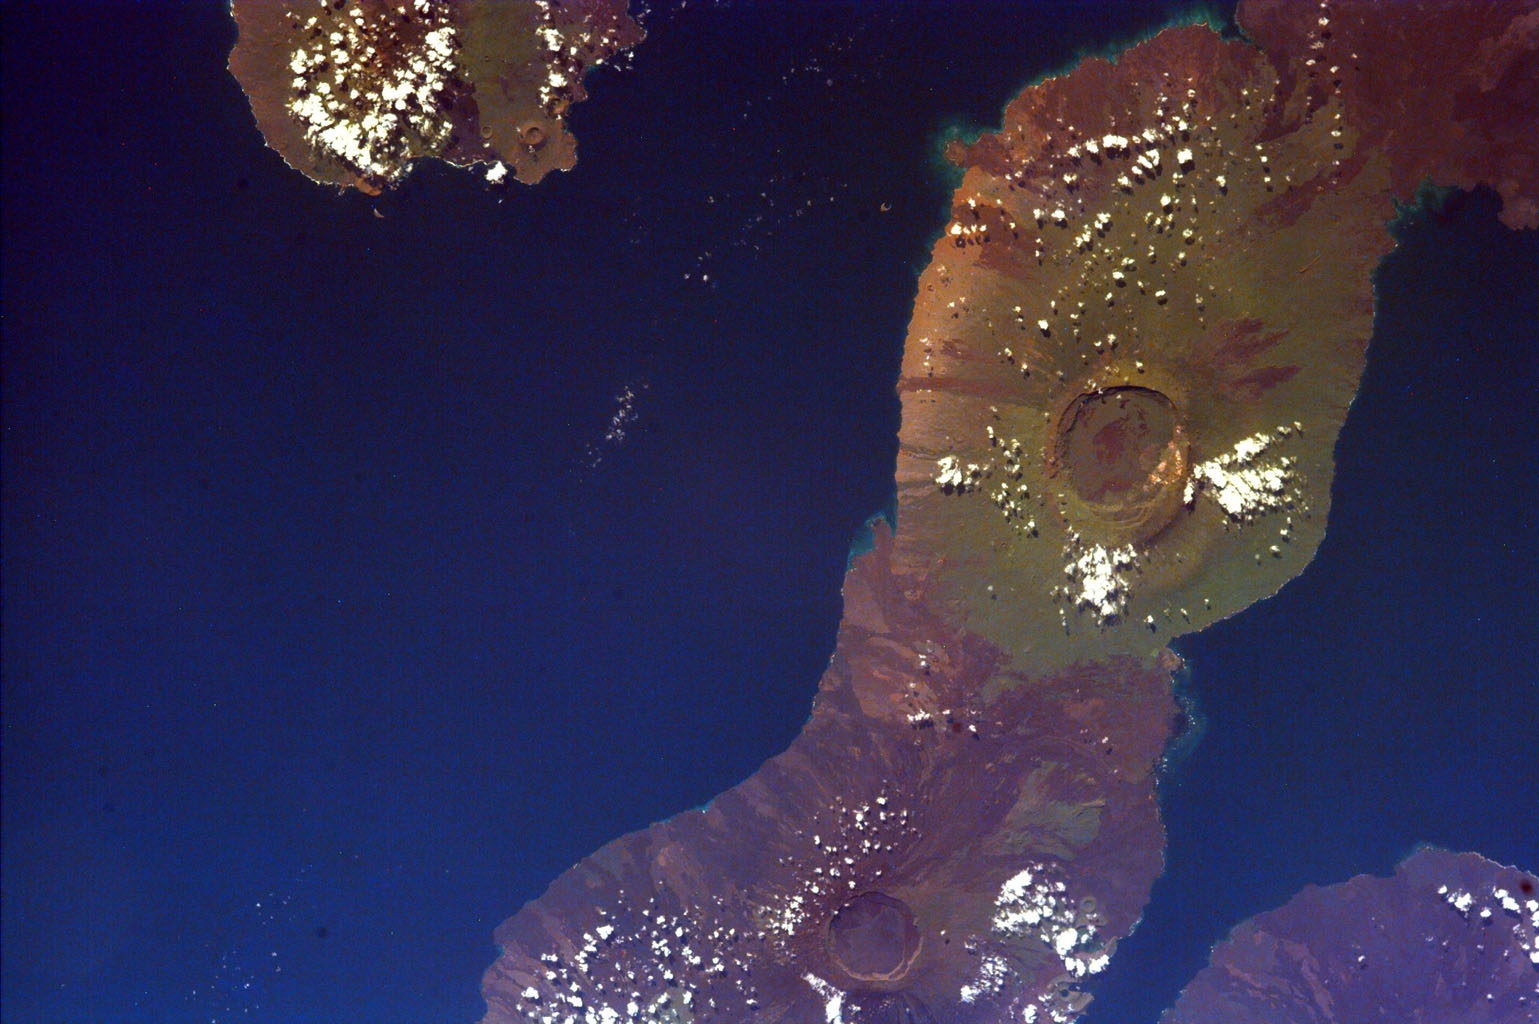 This image of the Galapagos Islands captures two large shield volcanoes on Isla Isabella, the largest and least inhabited island in the Galapagos chain. This image is from NASA's EarthKAM..